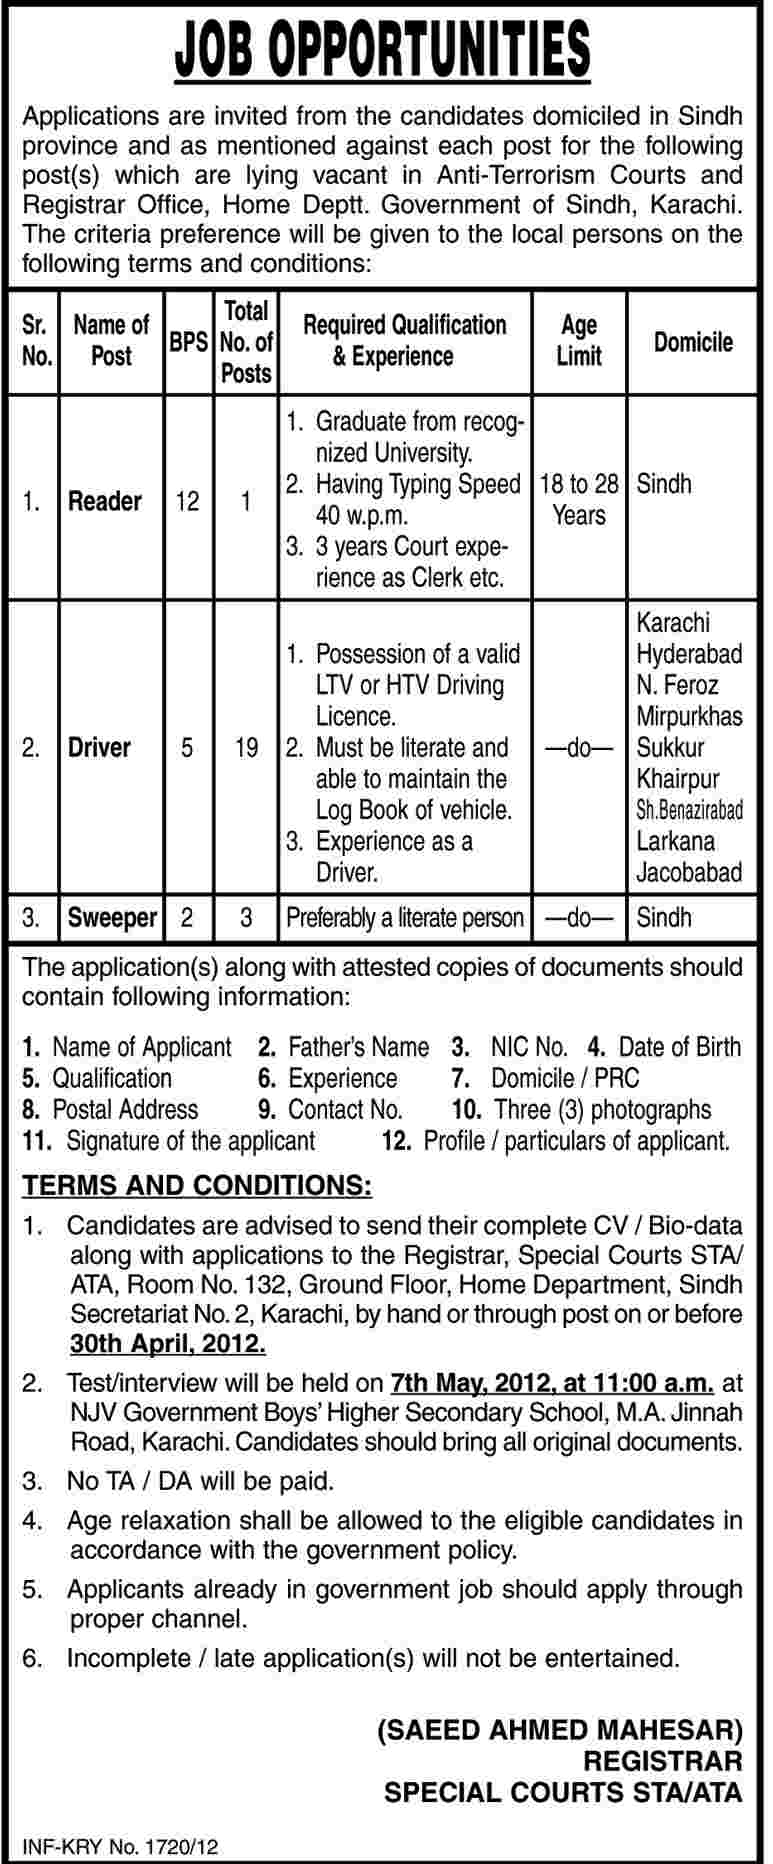 Anti-Terrorism Court and Registrar Office, Home Department Govt. of Sindh Jobs